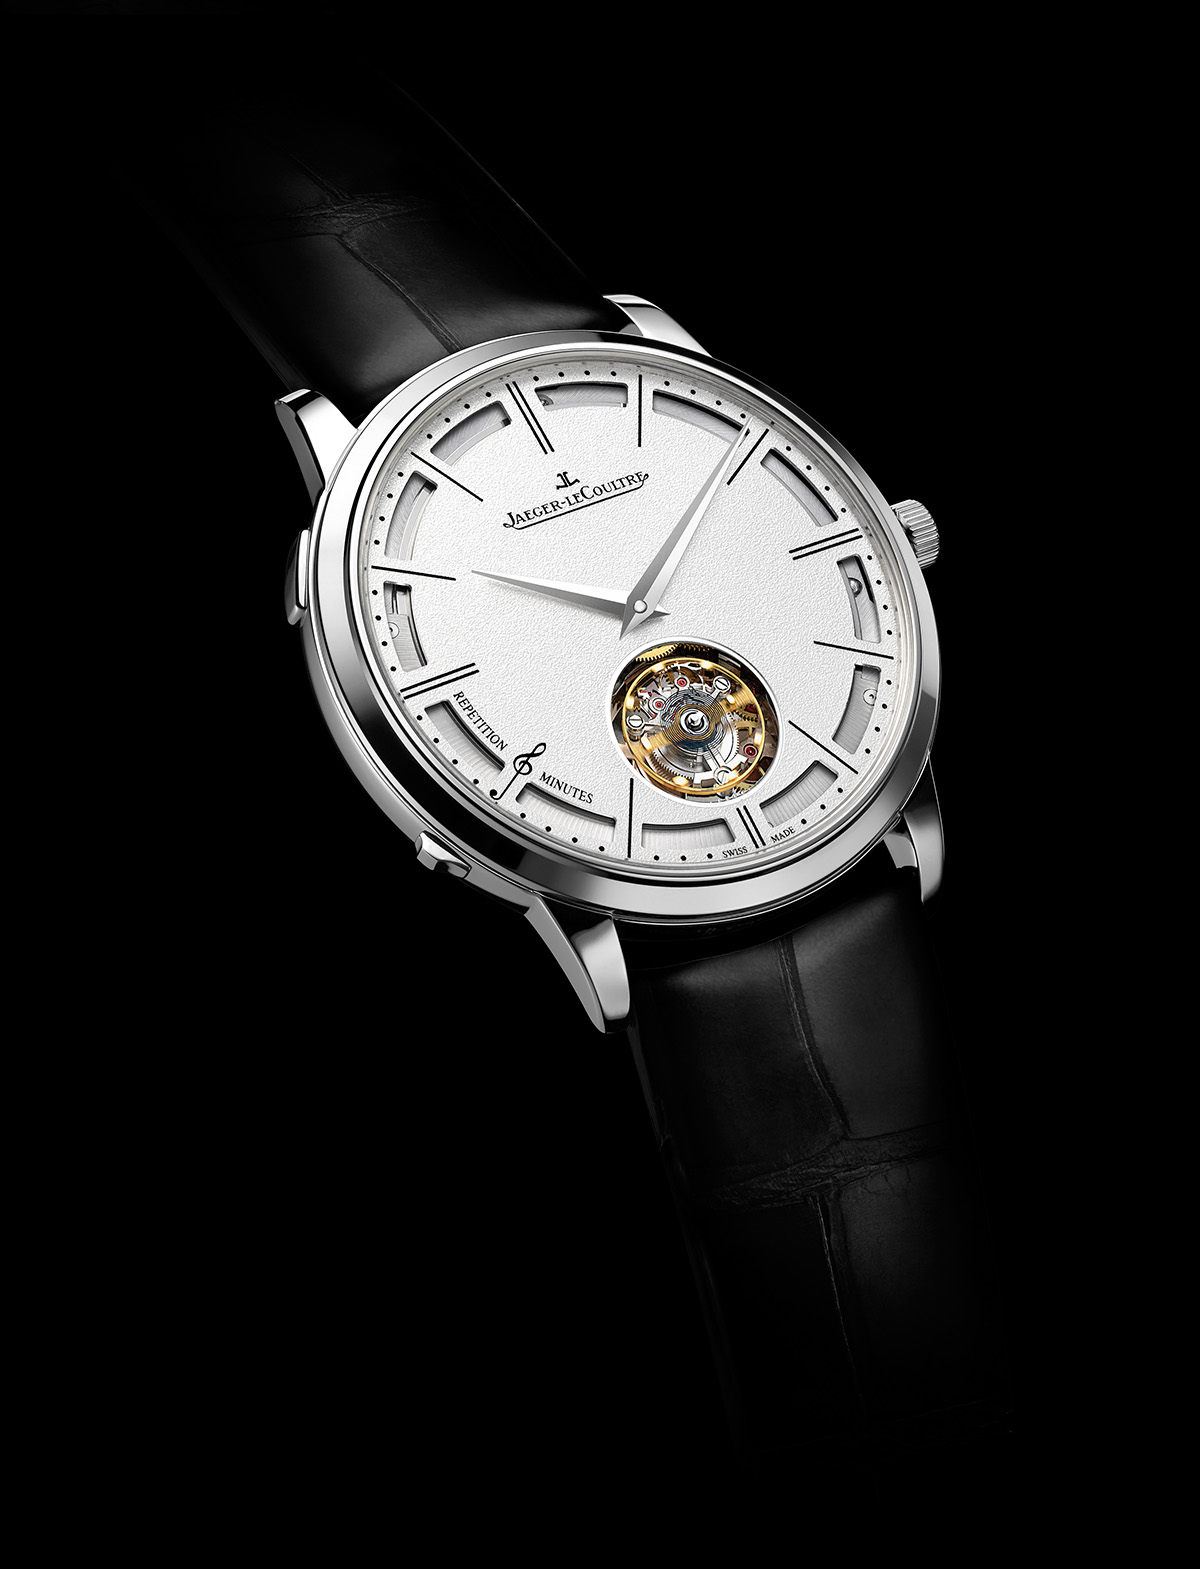 Master Ultra Thin Minute Repeater Flying Tourbillon - 3-4 FN